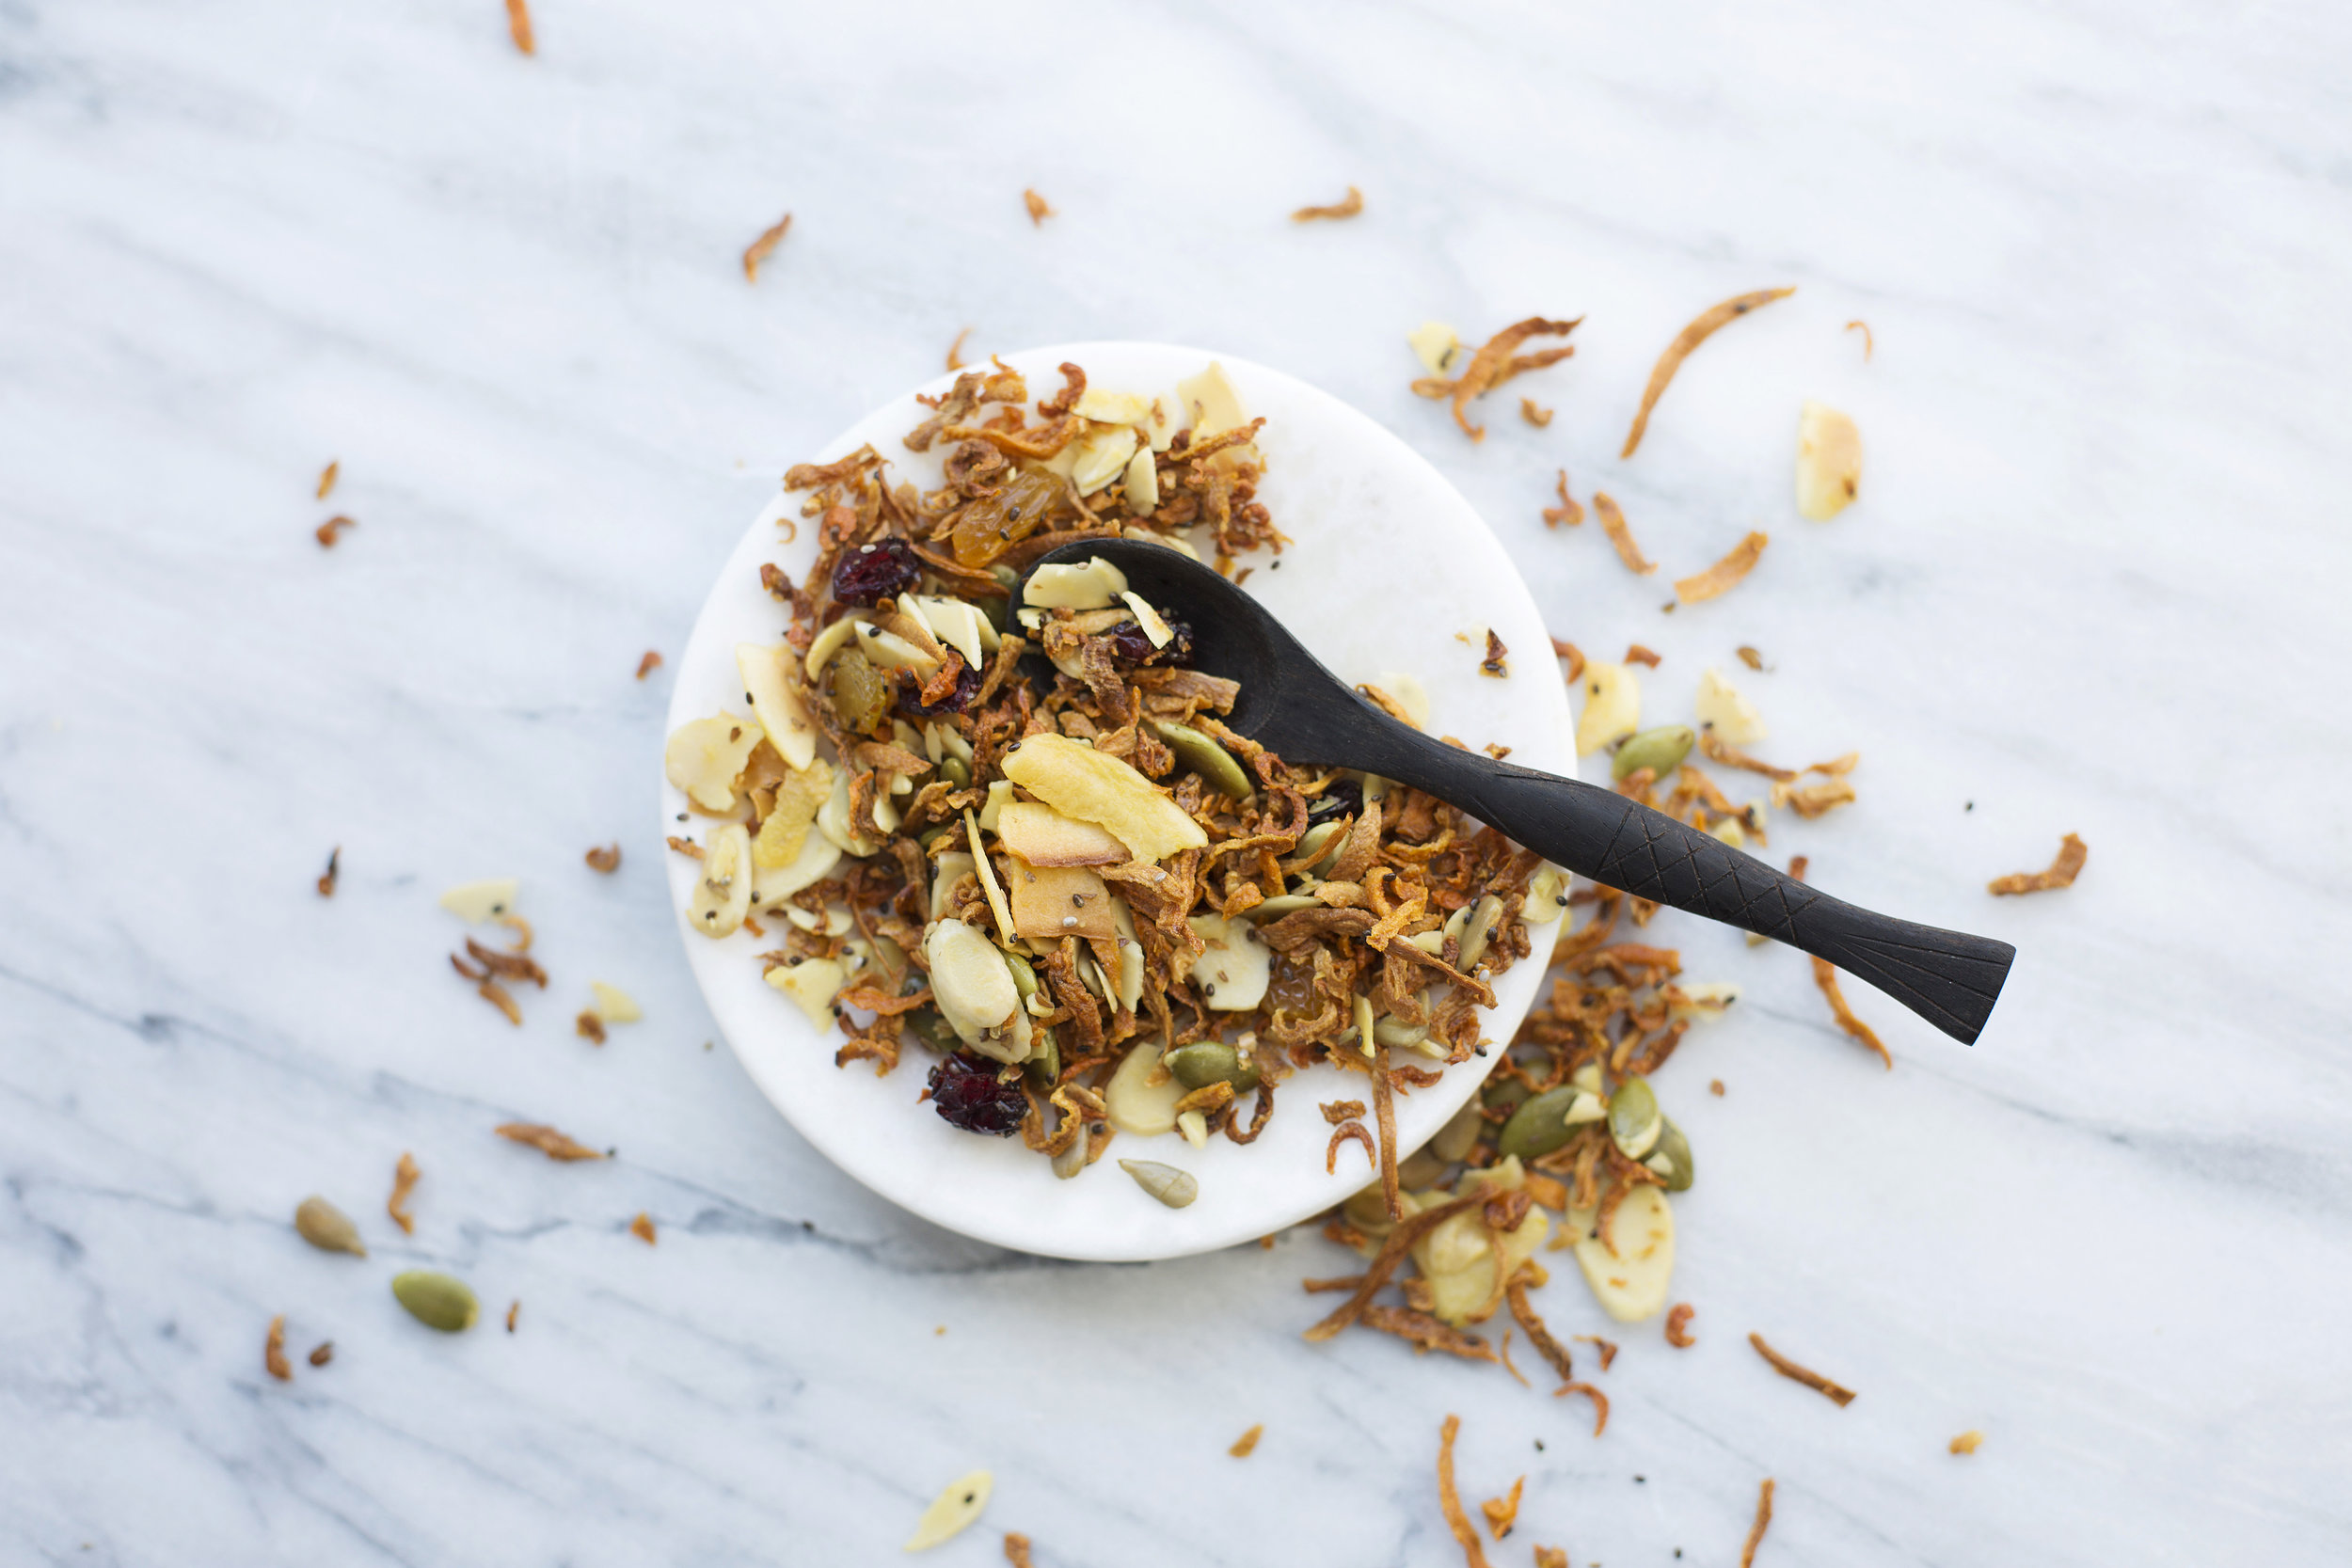 ROOTS AND SEEDS - A VEGETABLE GRANOLA